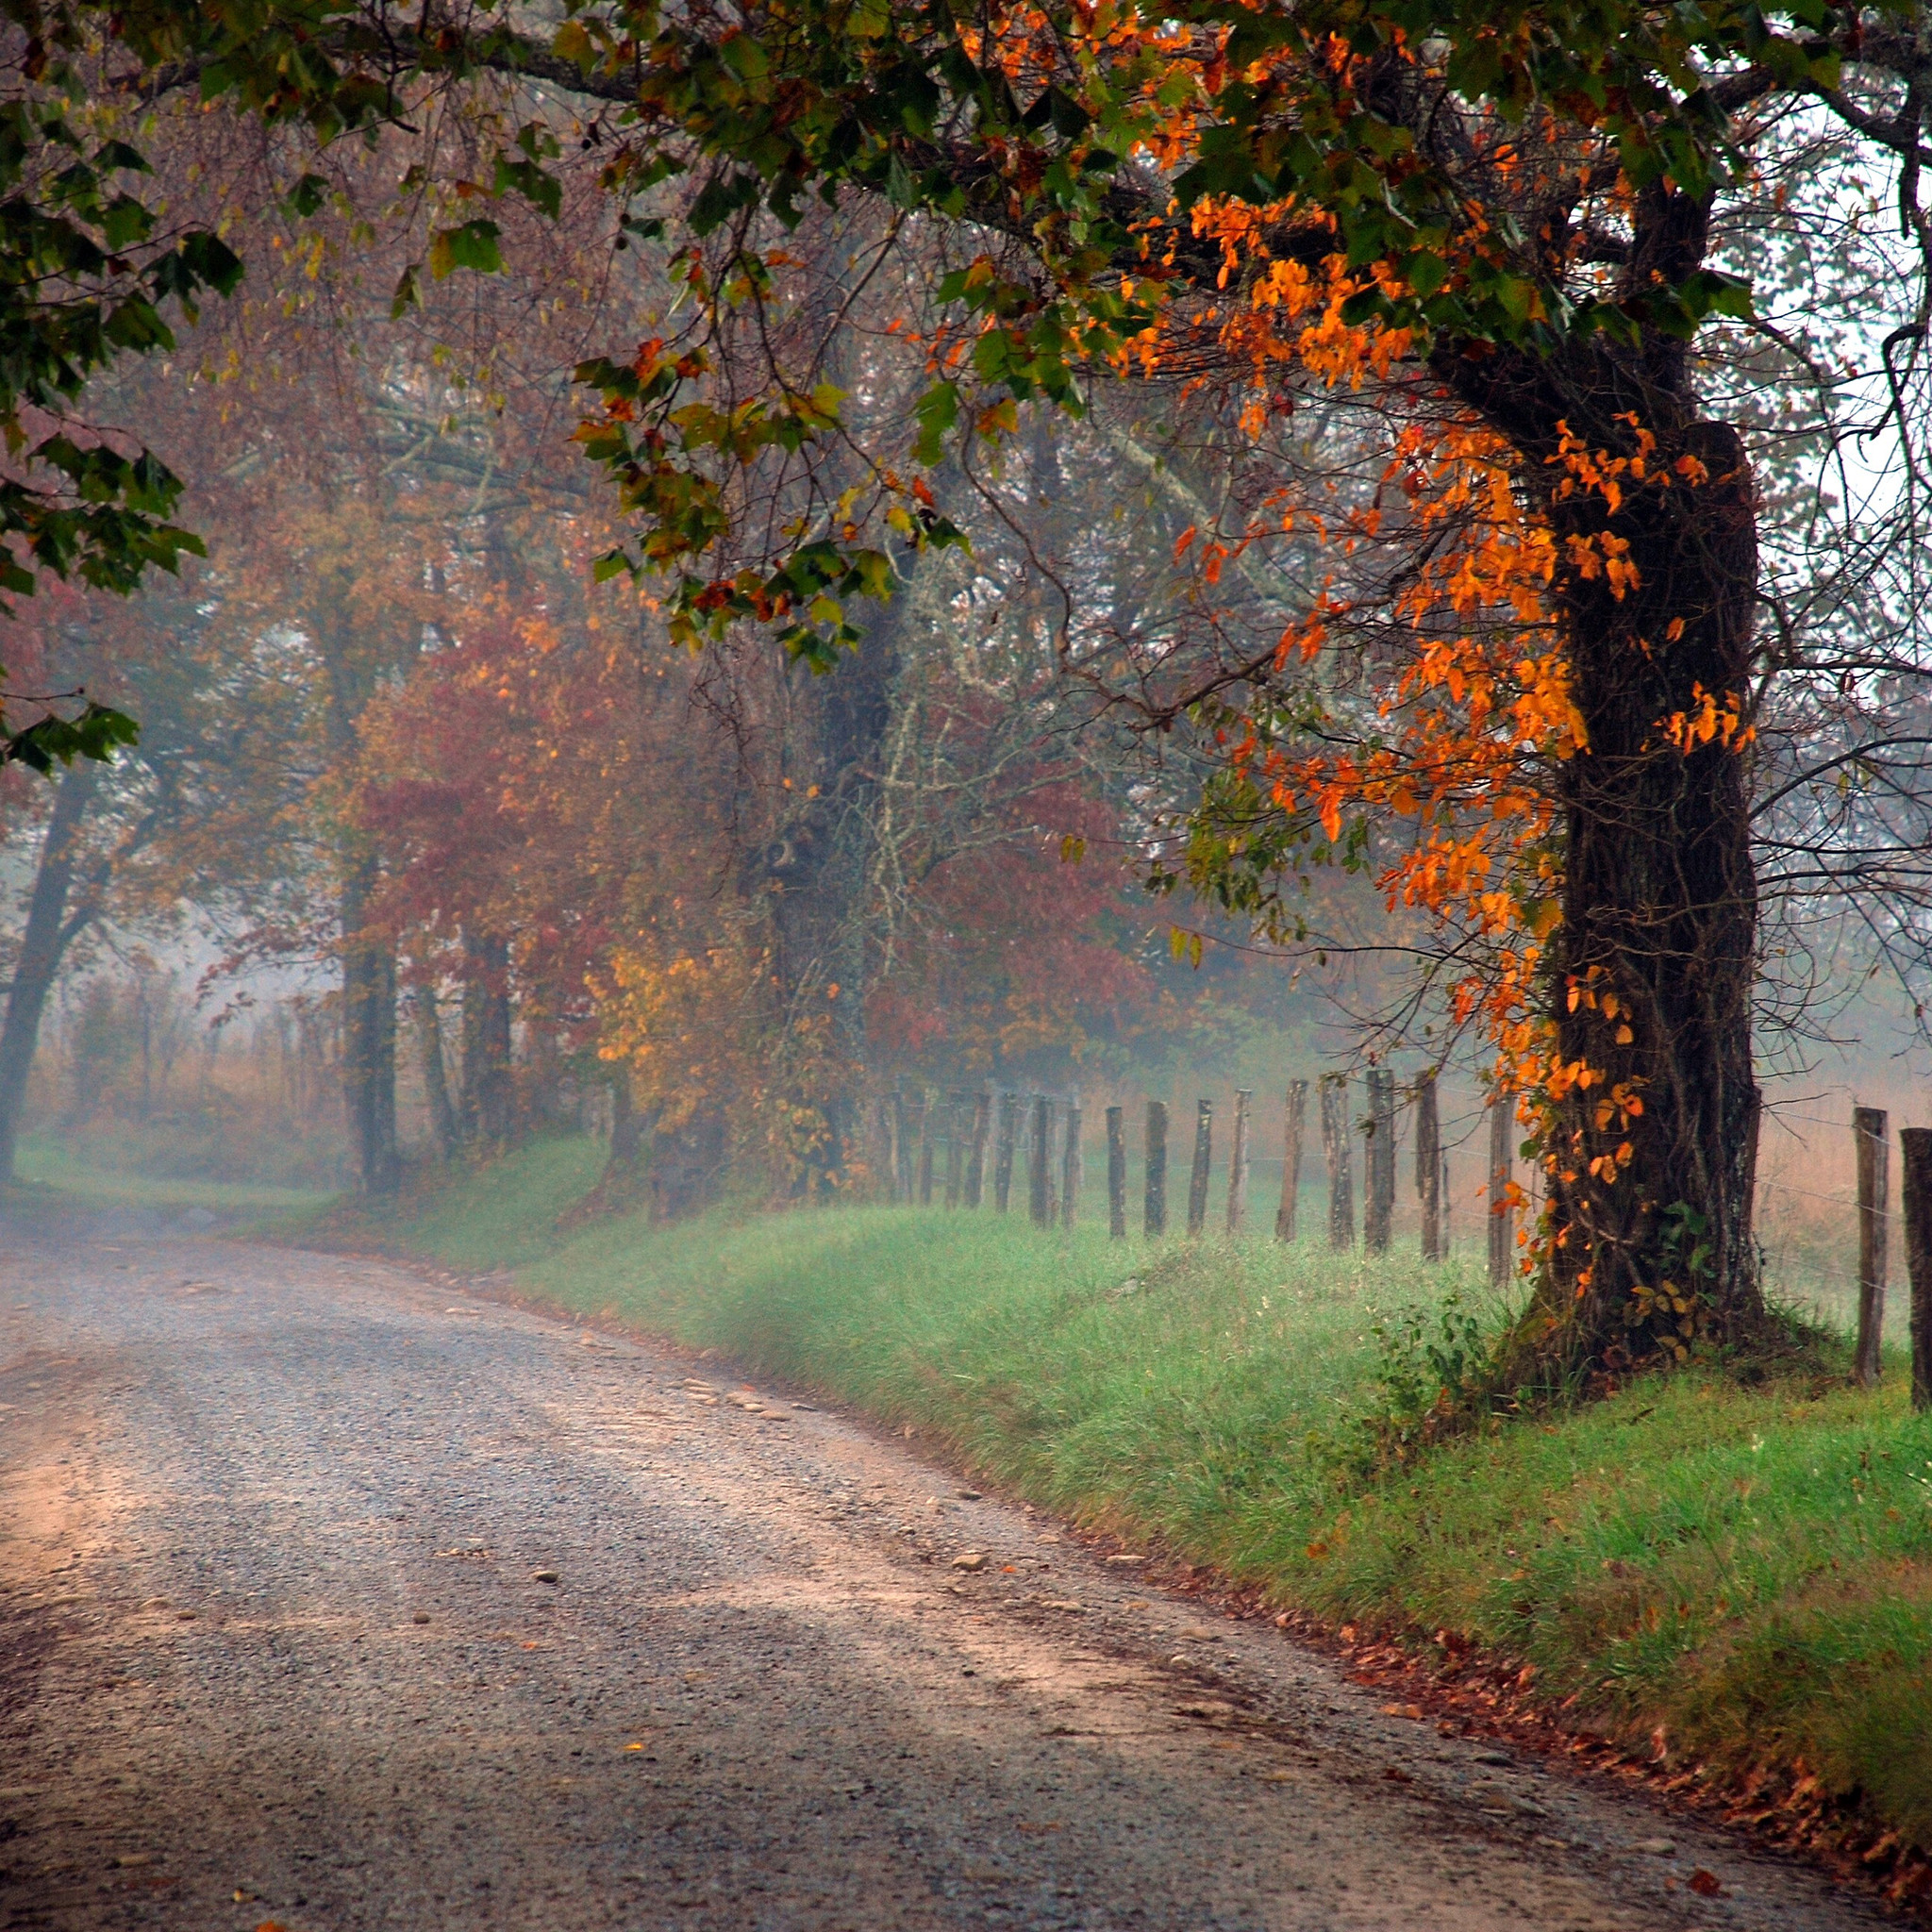 Res: 2048x2048, Fall on the Country Road 3Wallpapers iPad Retina Fall on the Country Road  iPad Retina